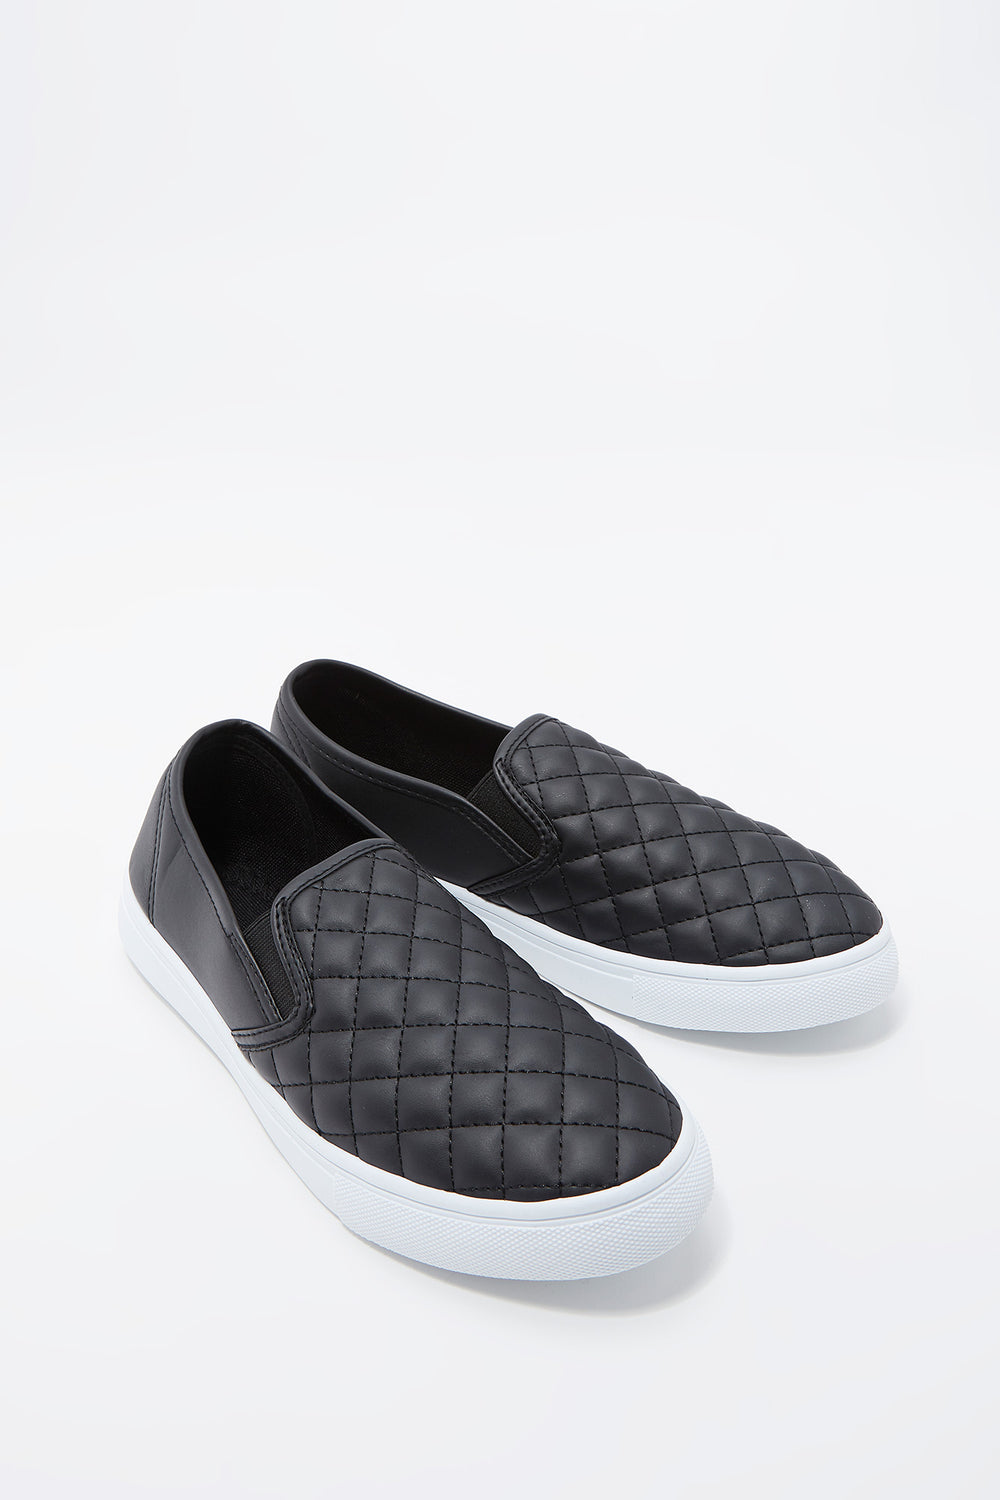 Quilted Faux-Leather Slip-On Sneaker Black